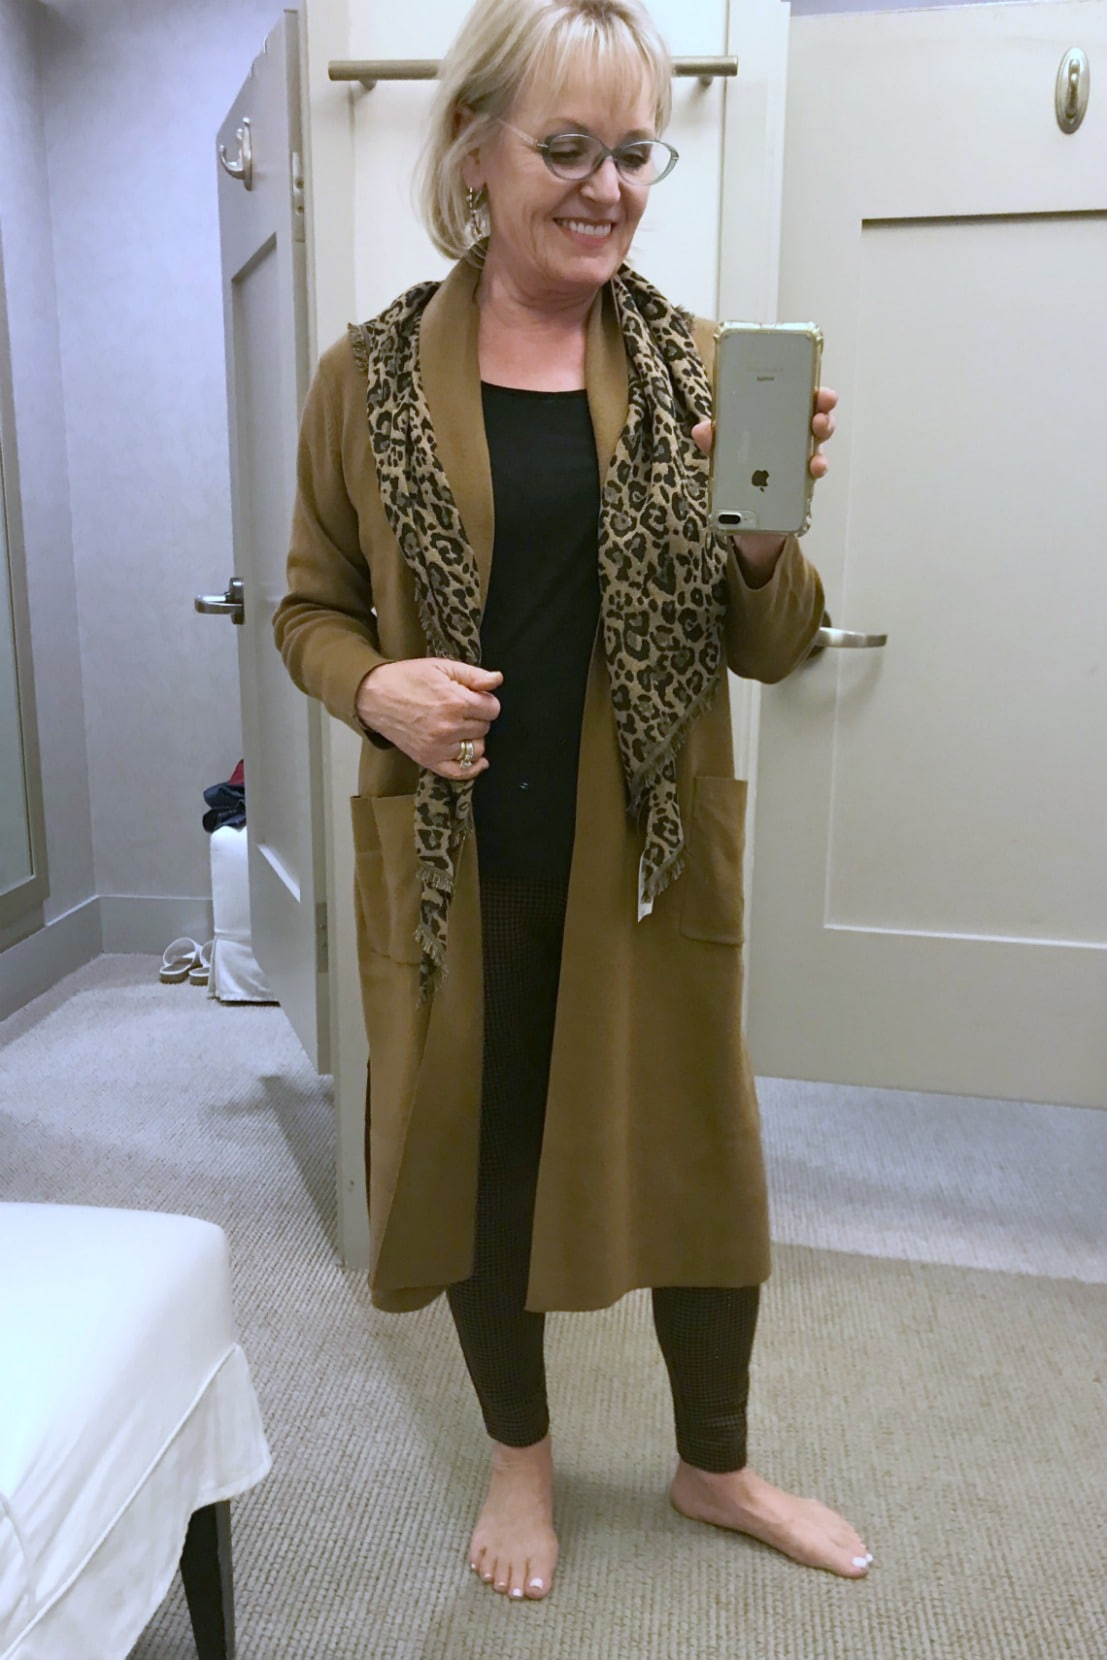 Jennifer Connolly of A Well Styled life wearing j.jill sweater and scarf in changing room at j.jill